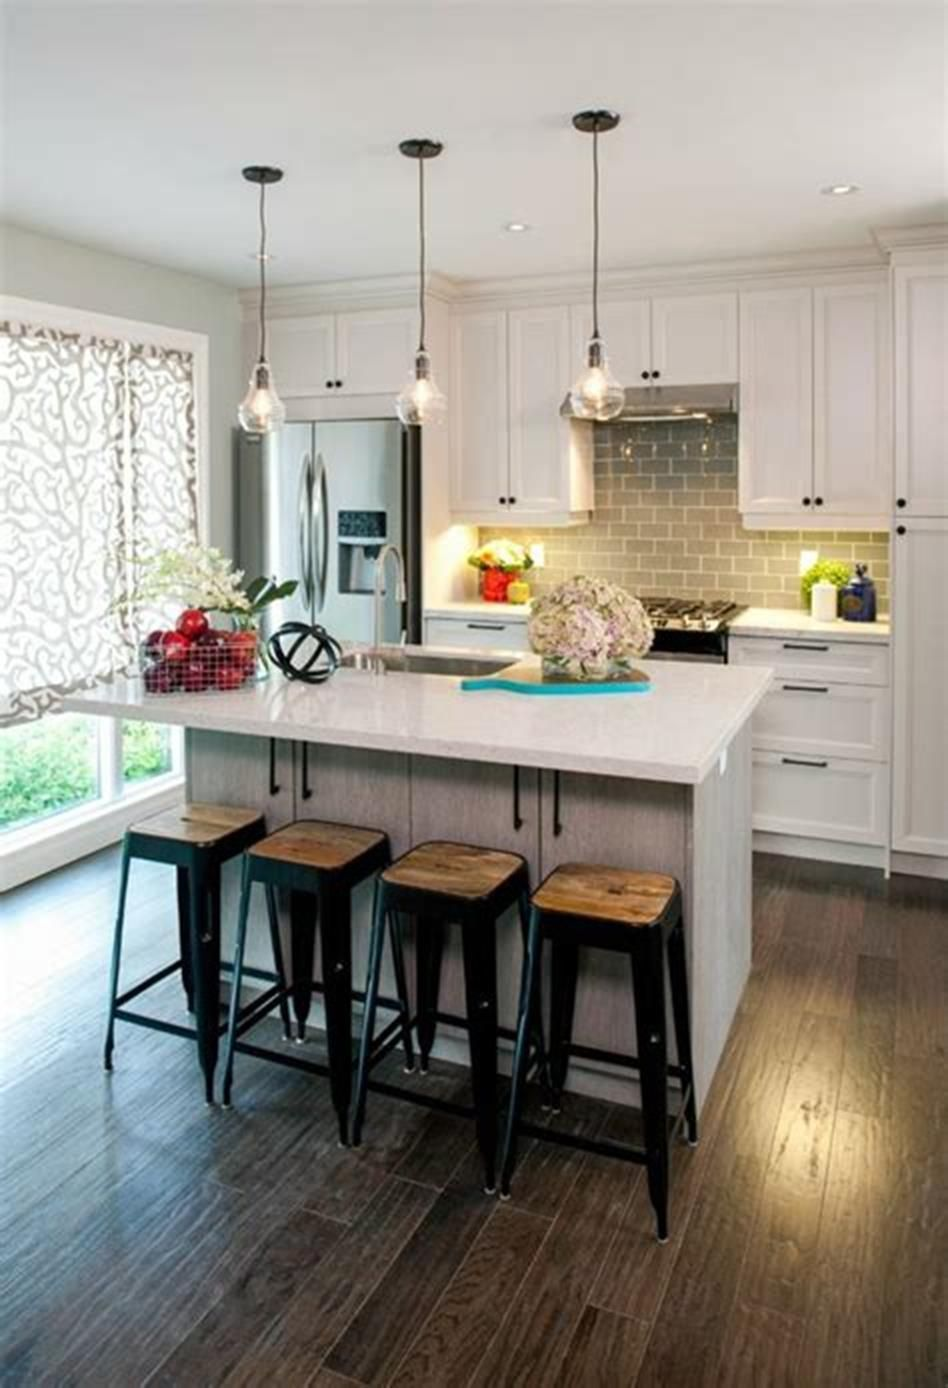 42 best kitchen decorating ideas on a budget 2019 living room kitchen kitchen design kitchen on kitchen ideas on a budget id=12107